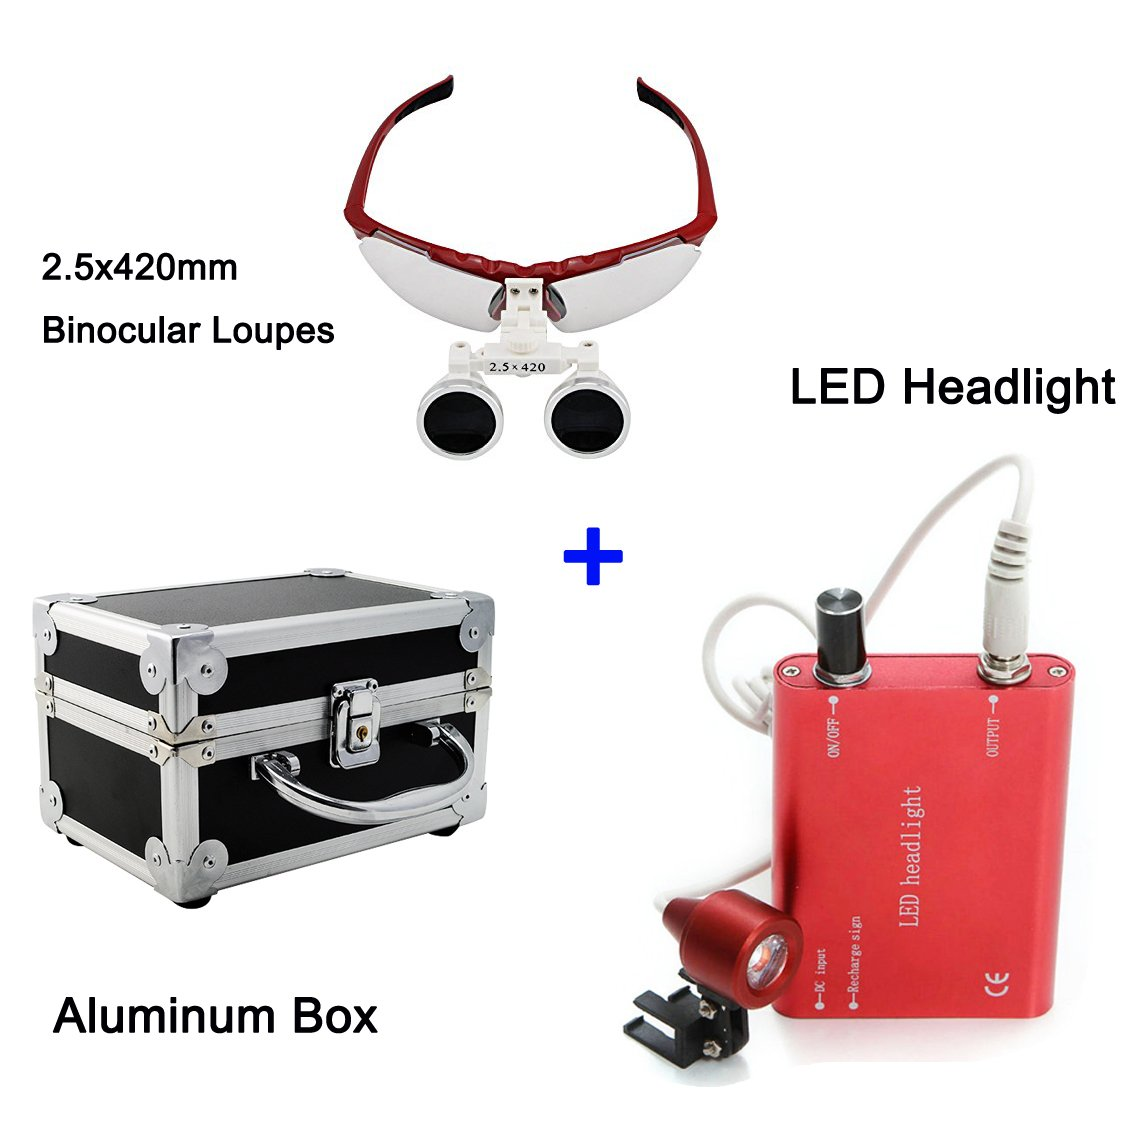 Zinnor 2.5 X 420mm Dental Surgical Medical Binocular Loupes Optical Glass Loupe + LED Head Light Lamp(Red) + Aluminum Box(Black)